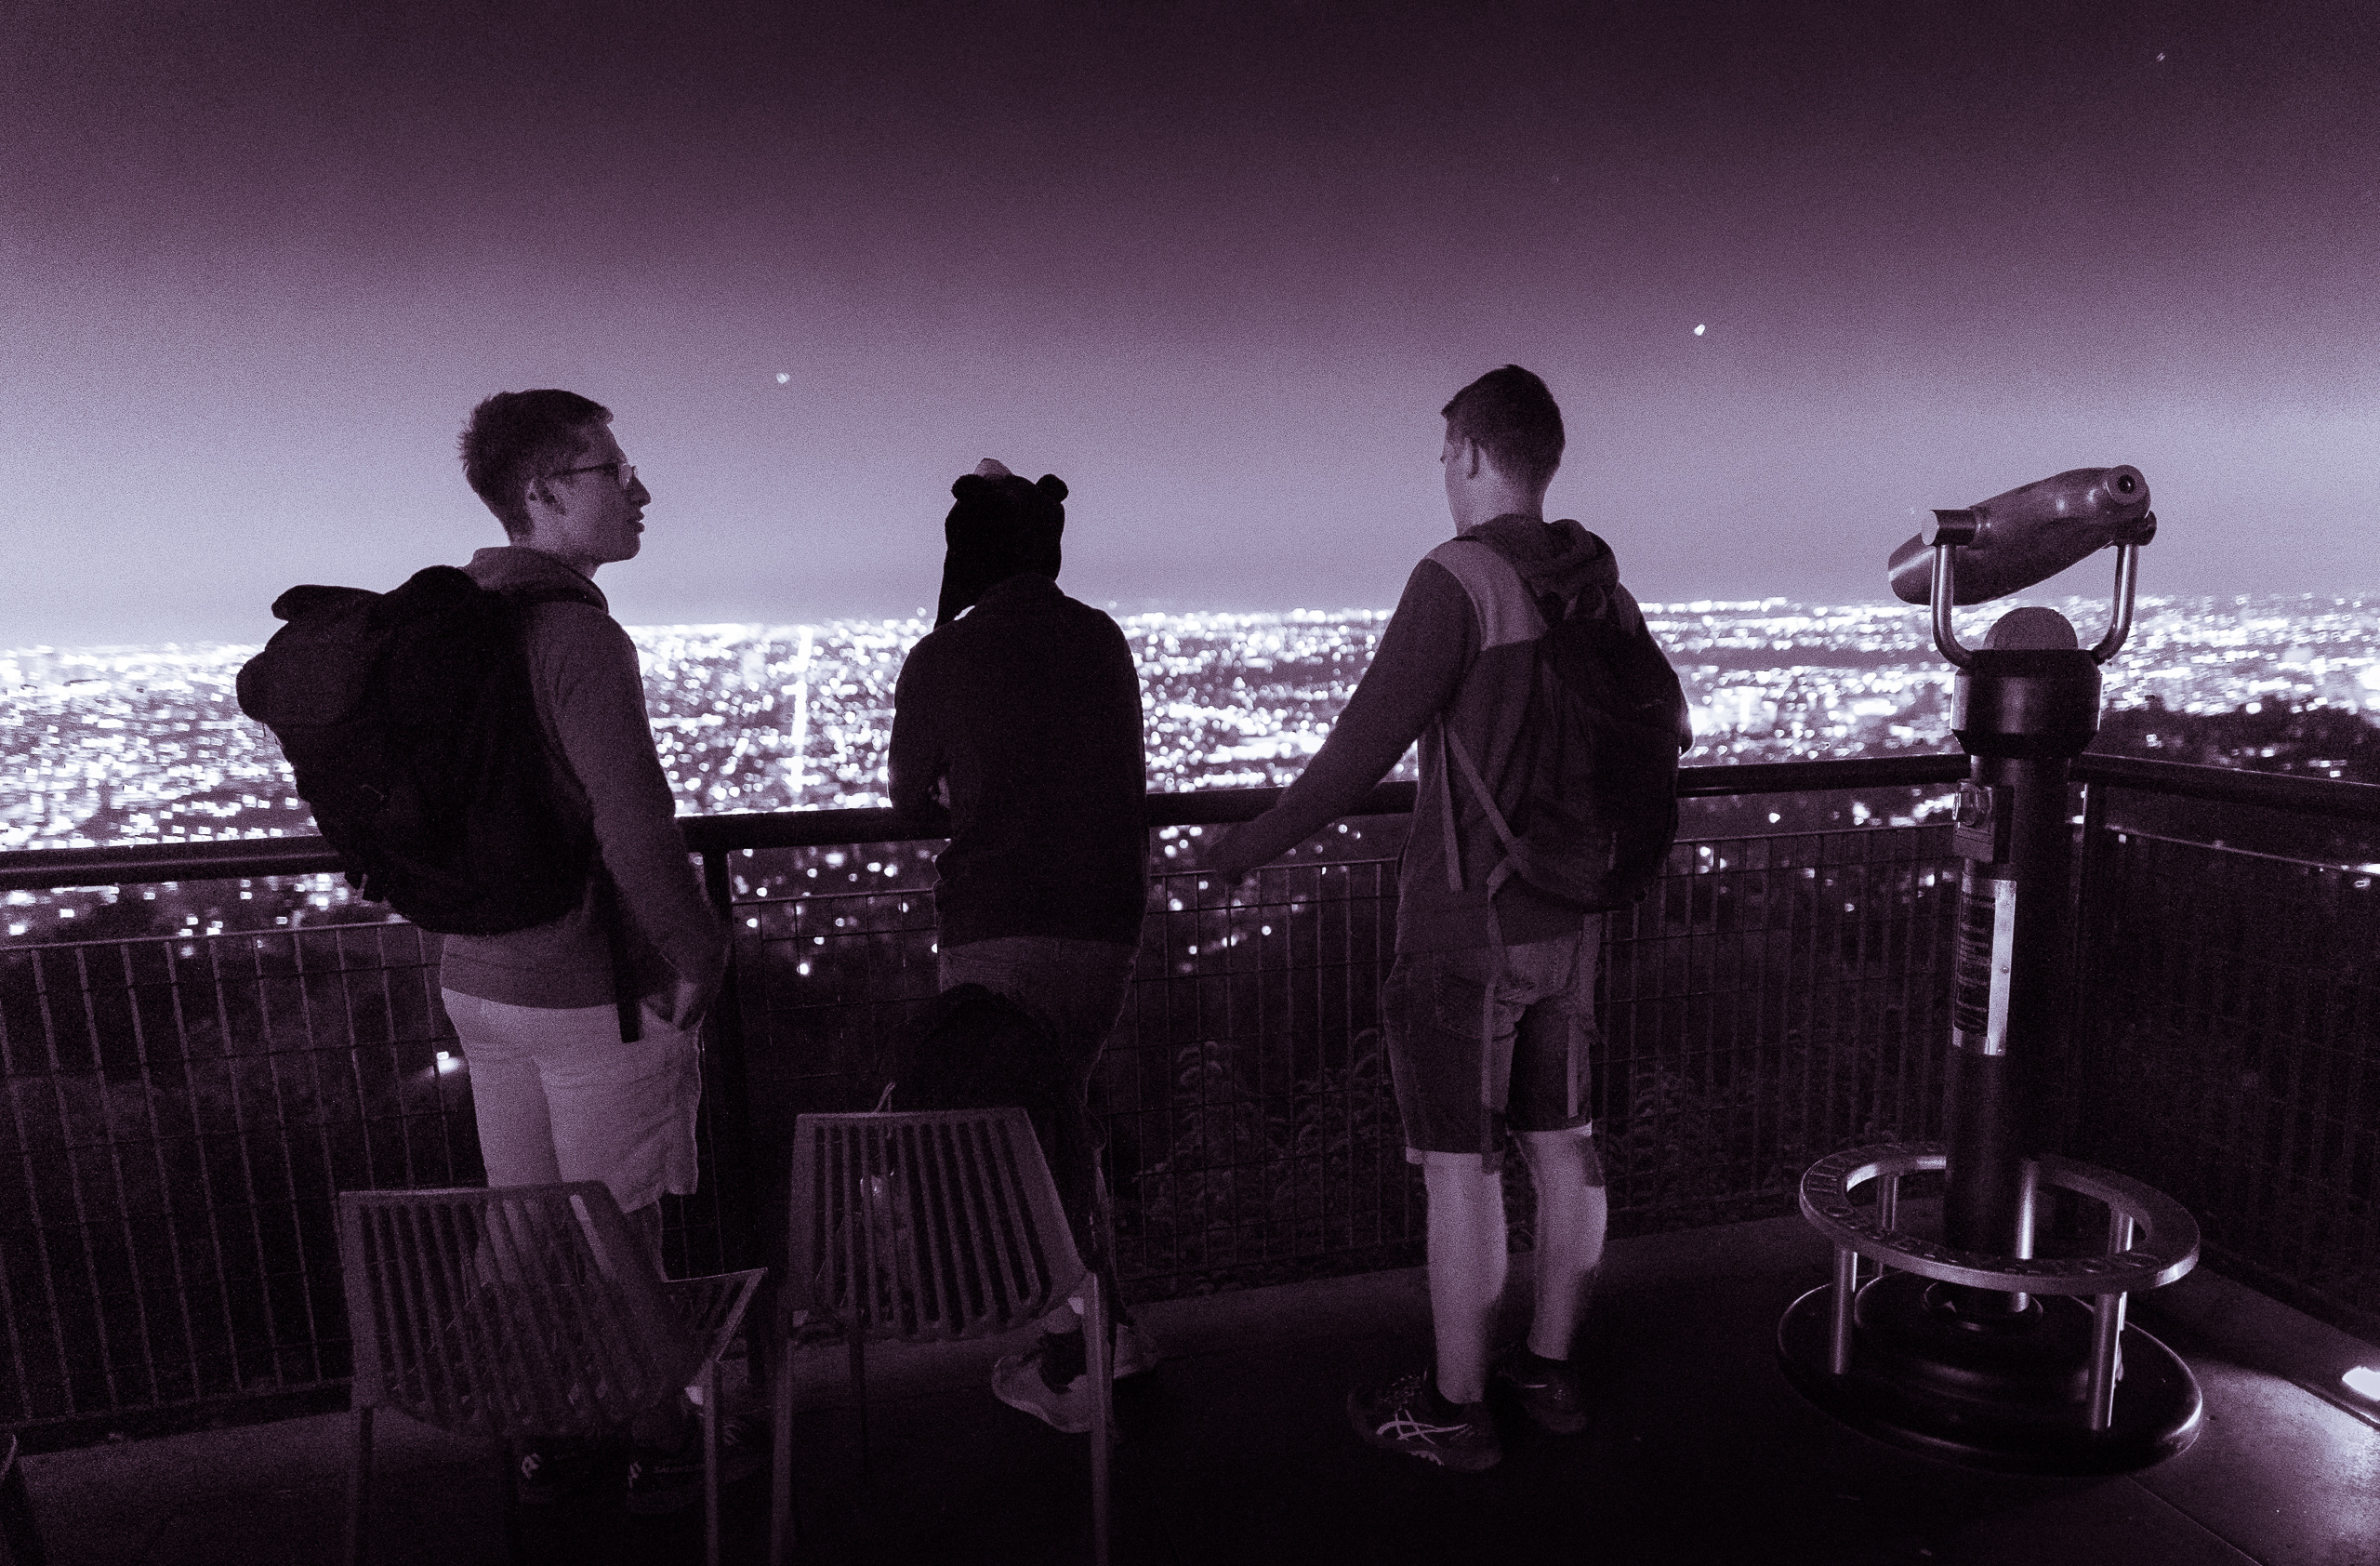 The Light Chasers Meetup group visiting Griffith Observatory and taking a 20 minute hike up the hill to photograph the Observatory against the lights of Los Angeles